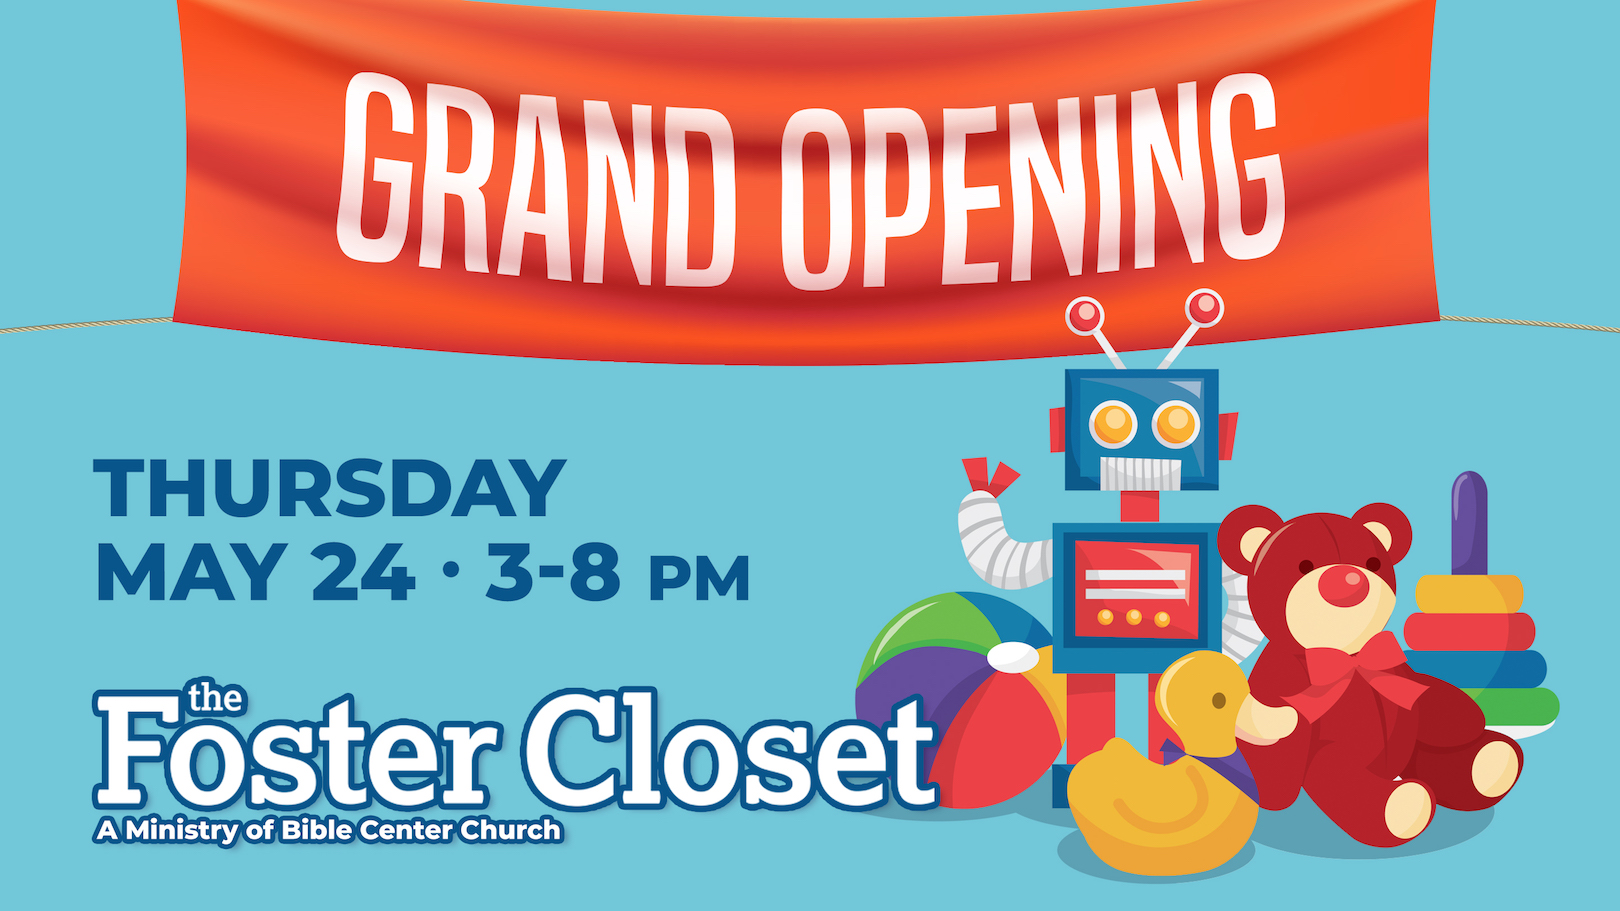 The Foster Closet – Grand Opening